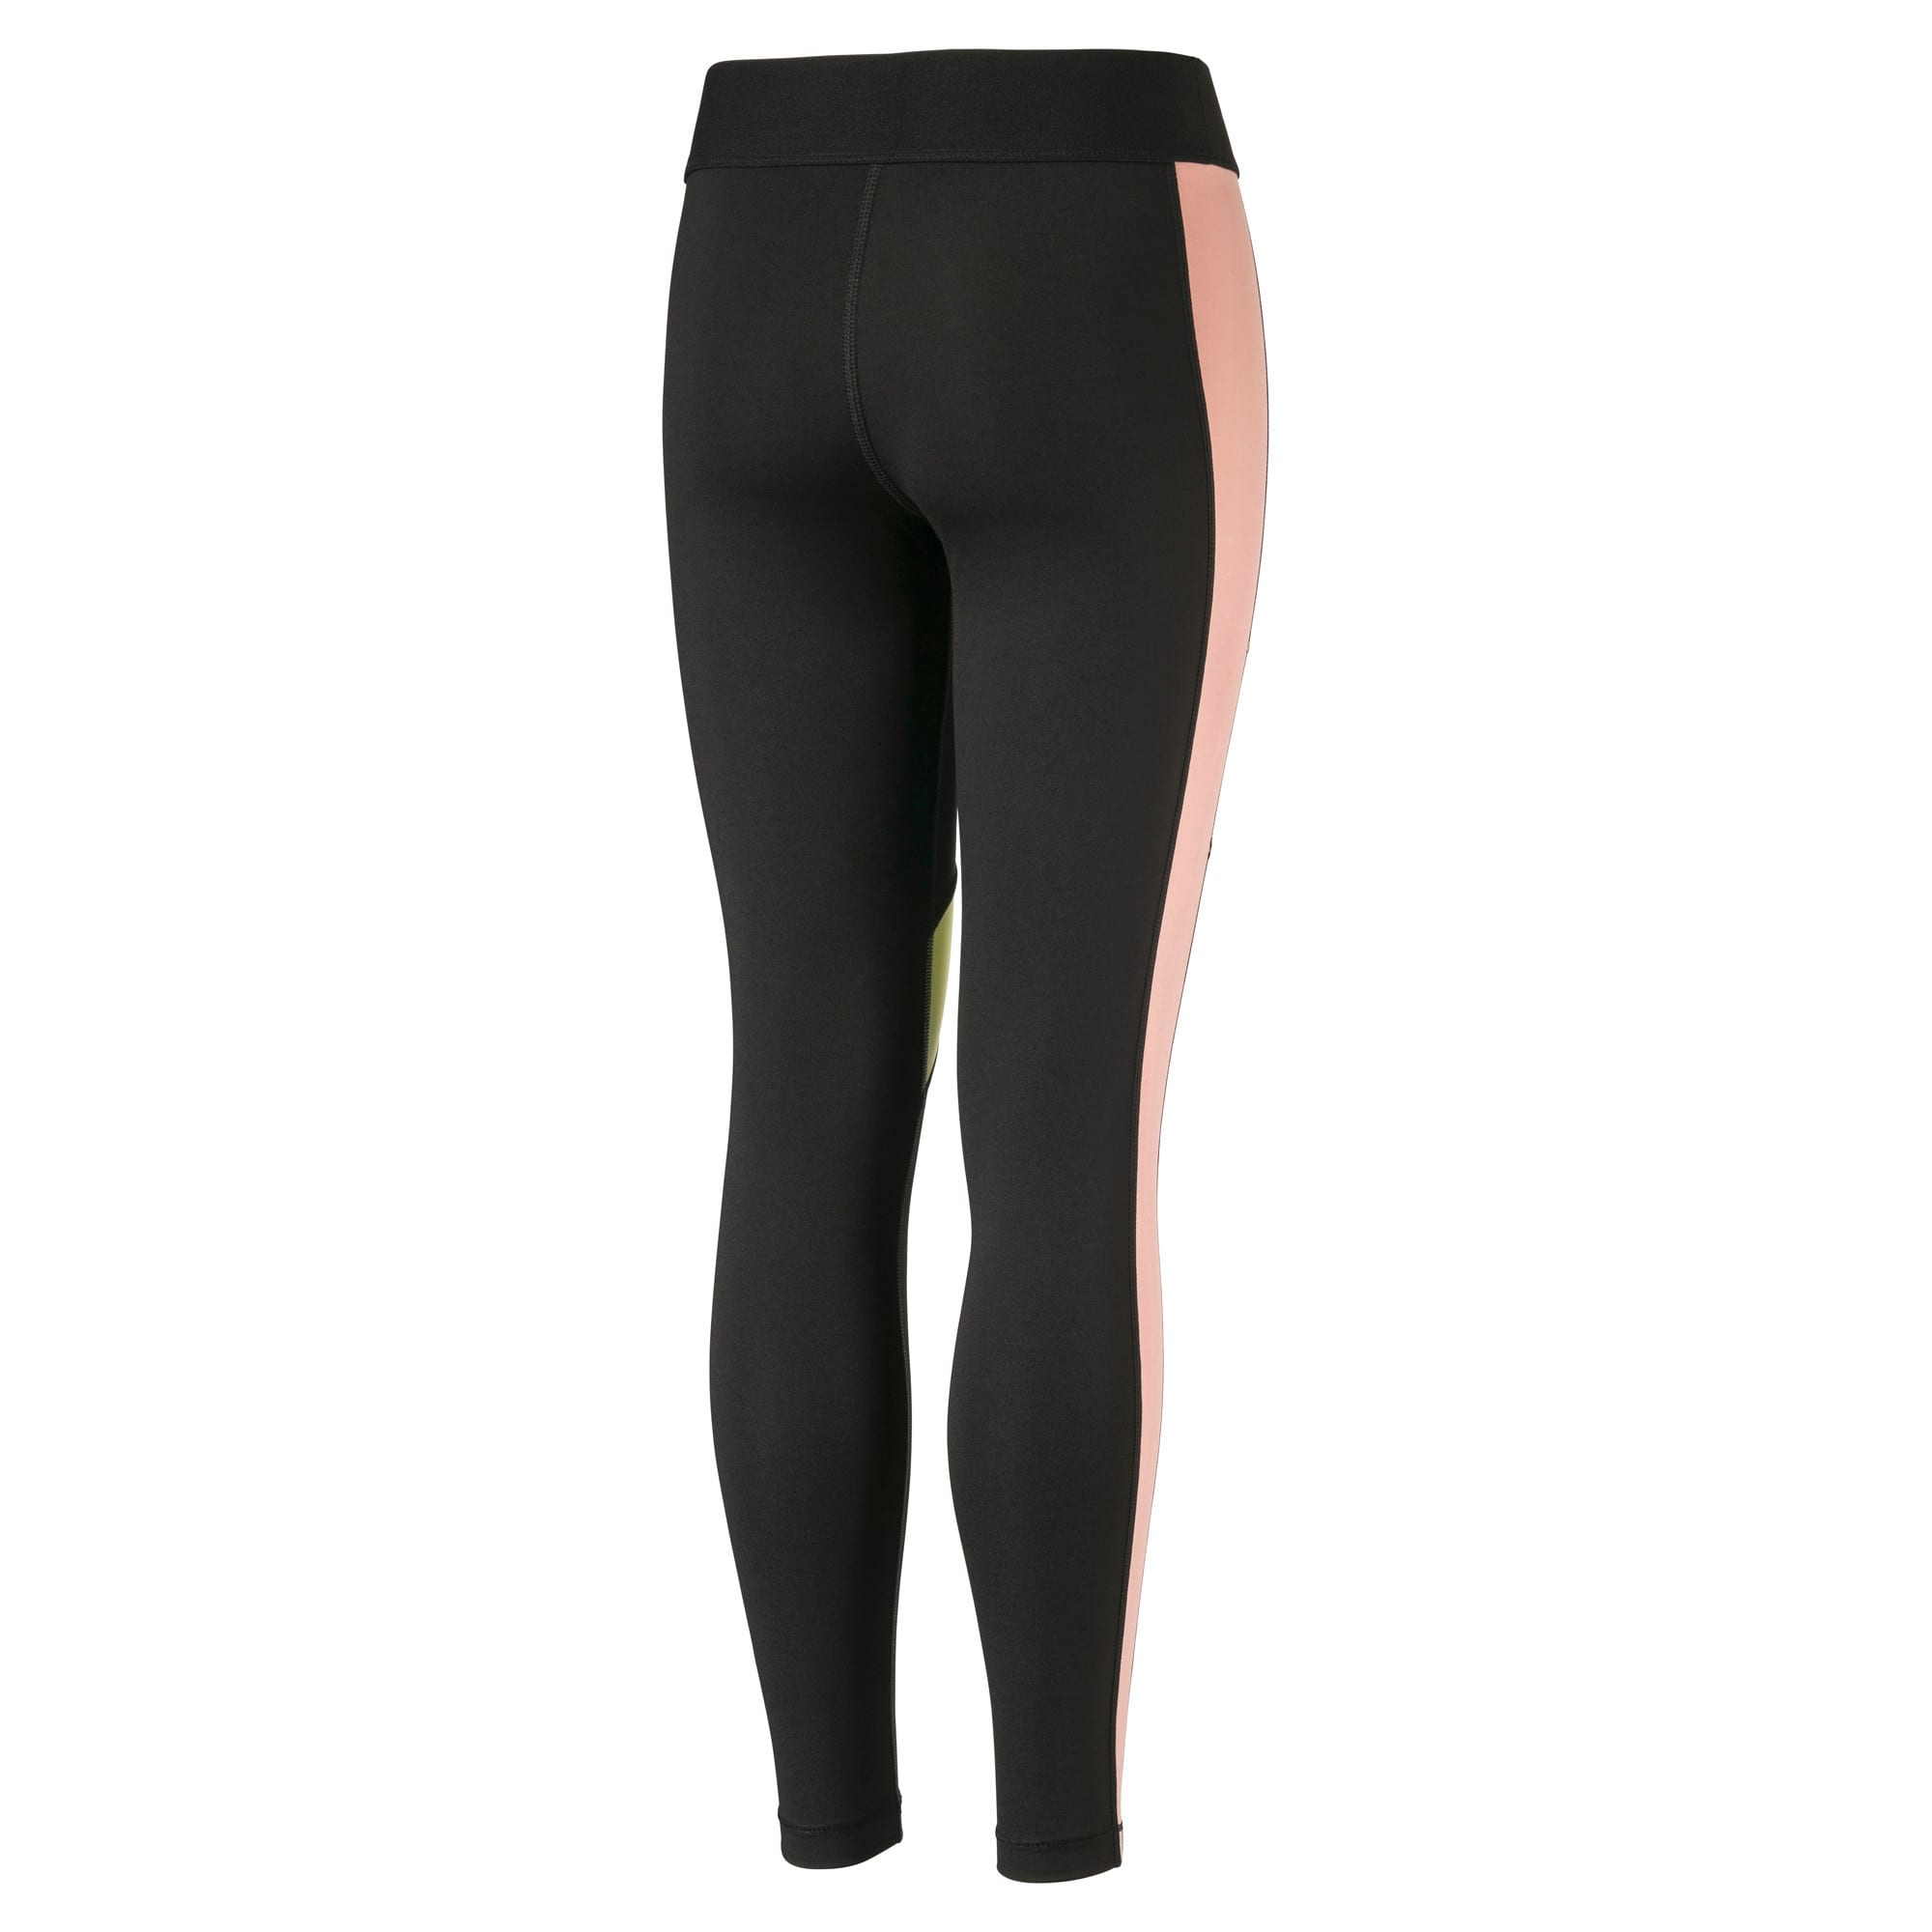 Thumbnail 2 of Girls' Leggings, Puma Black, medium